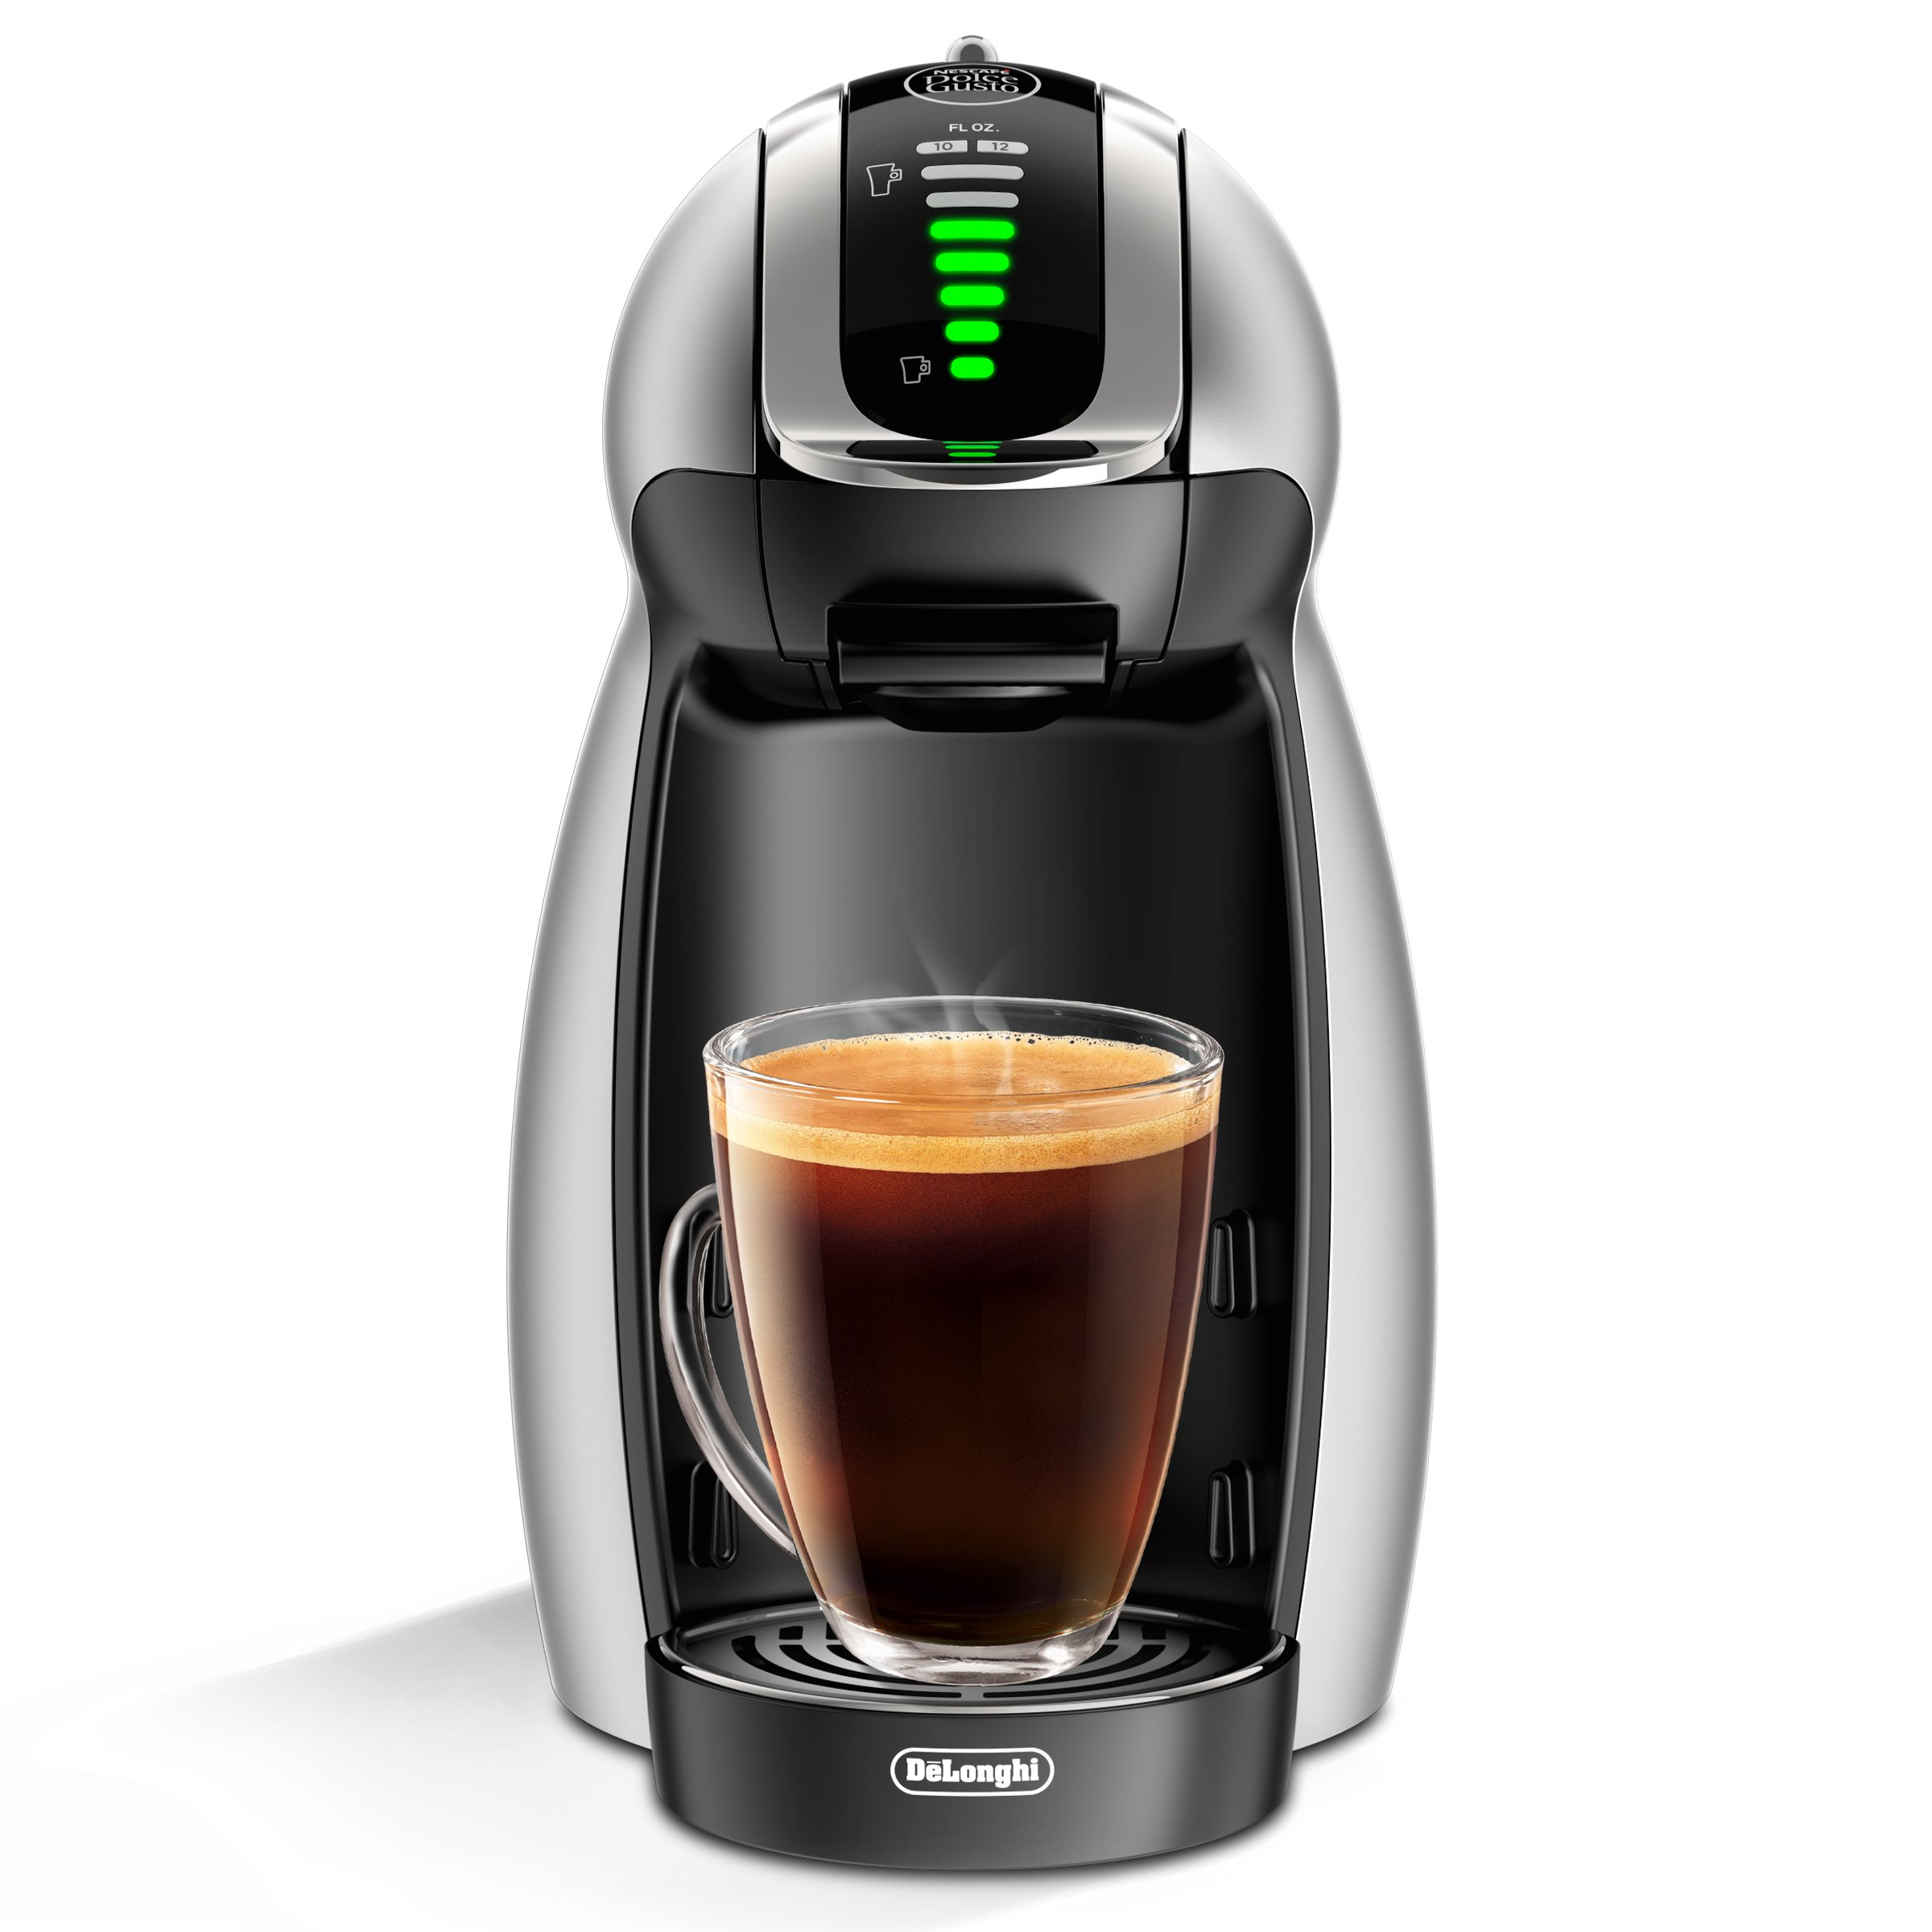 NESCAFÉ Dolce Gusto Genio 2 Coffee, Espresso and Cappuccino Pod Machine, made by De